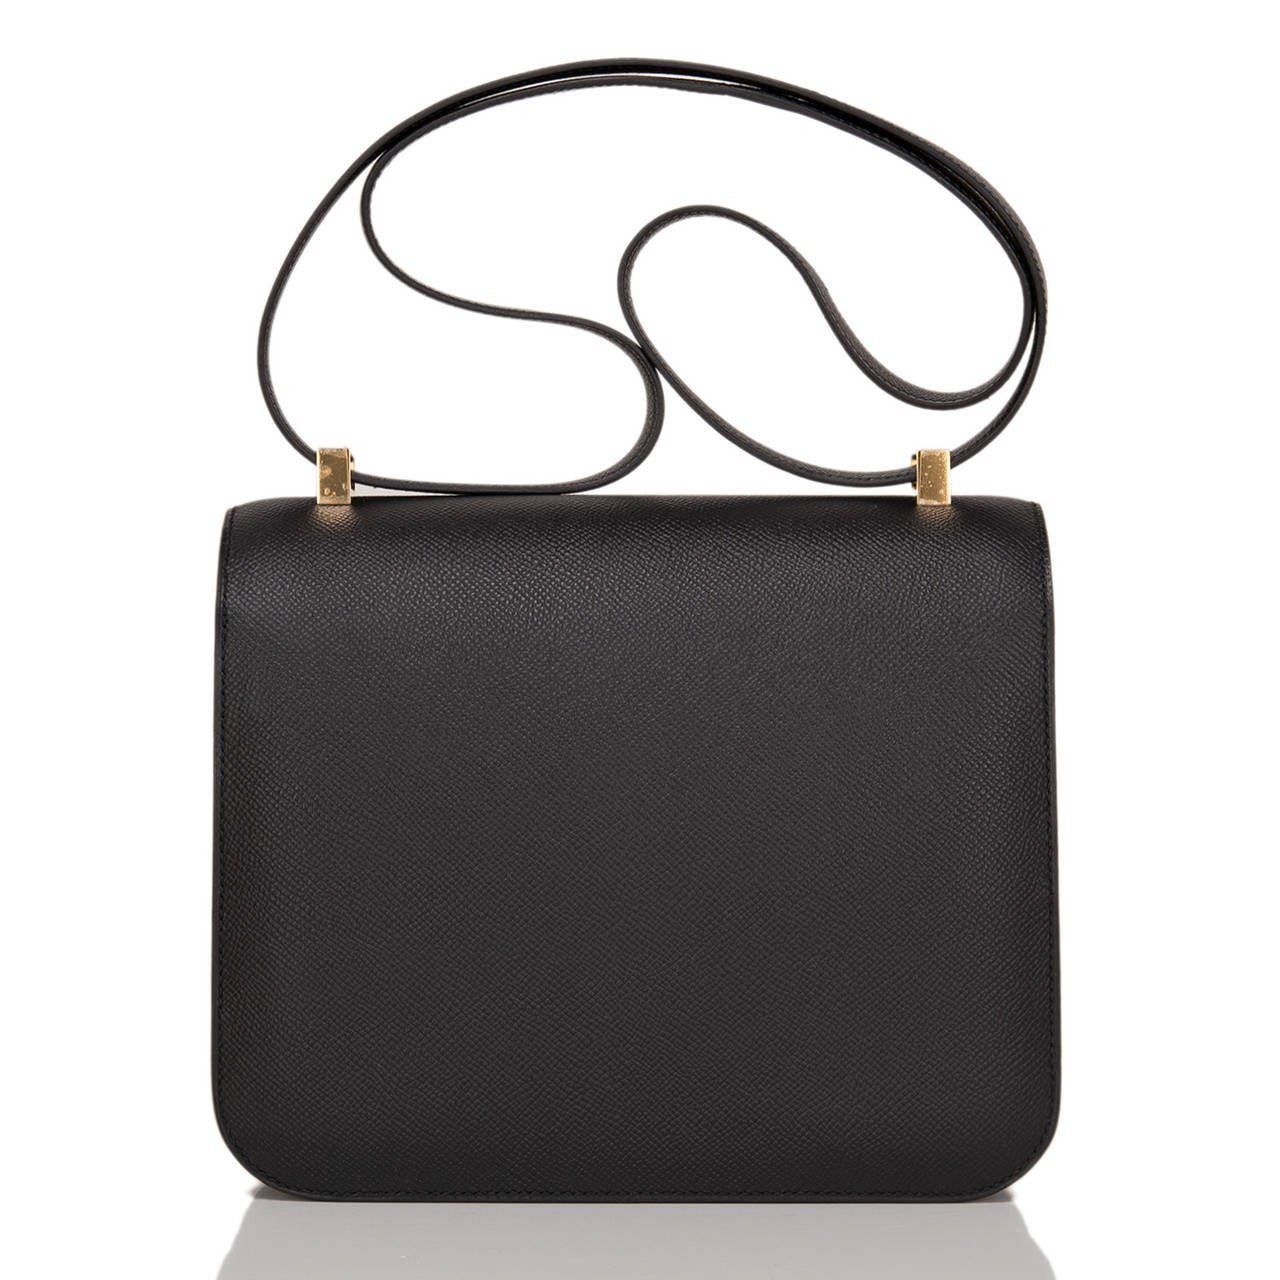 Hermes Black Epsom Constance 24cm Gold Hardware In New never worn Condition For Sale In New York, NY